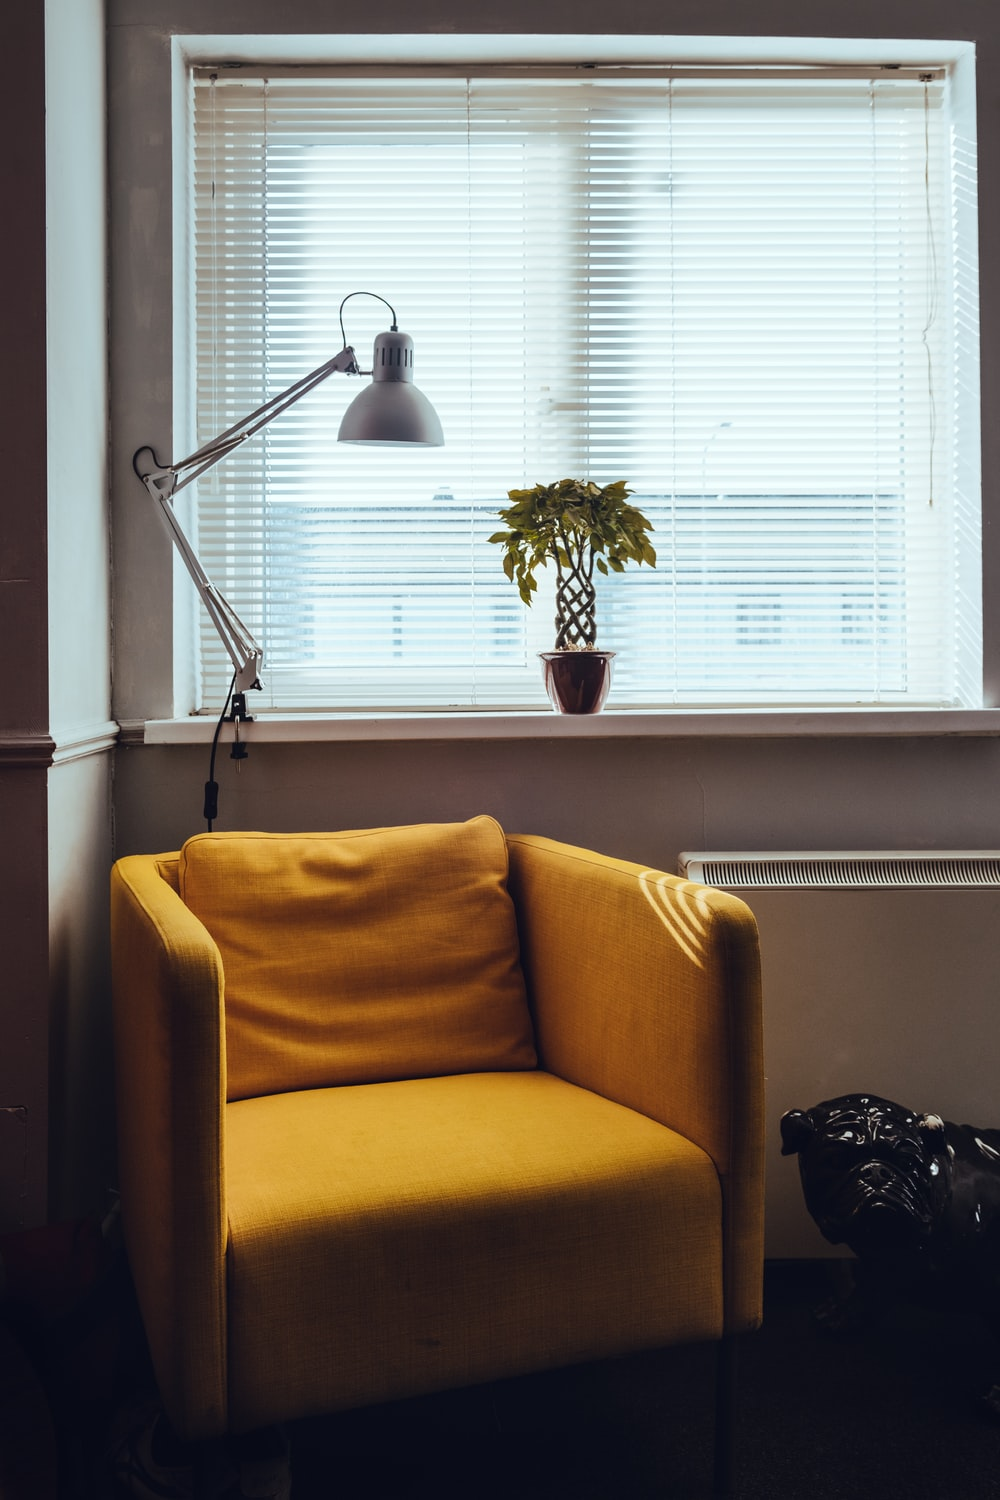 20 Chair Pictures Download Free Images On Unsplash